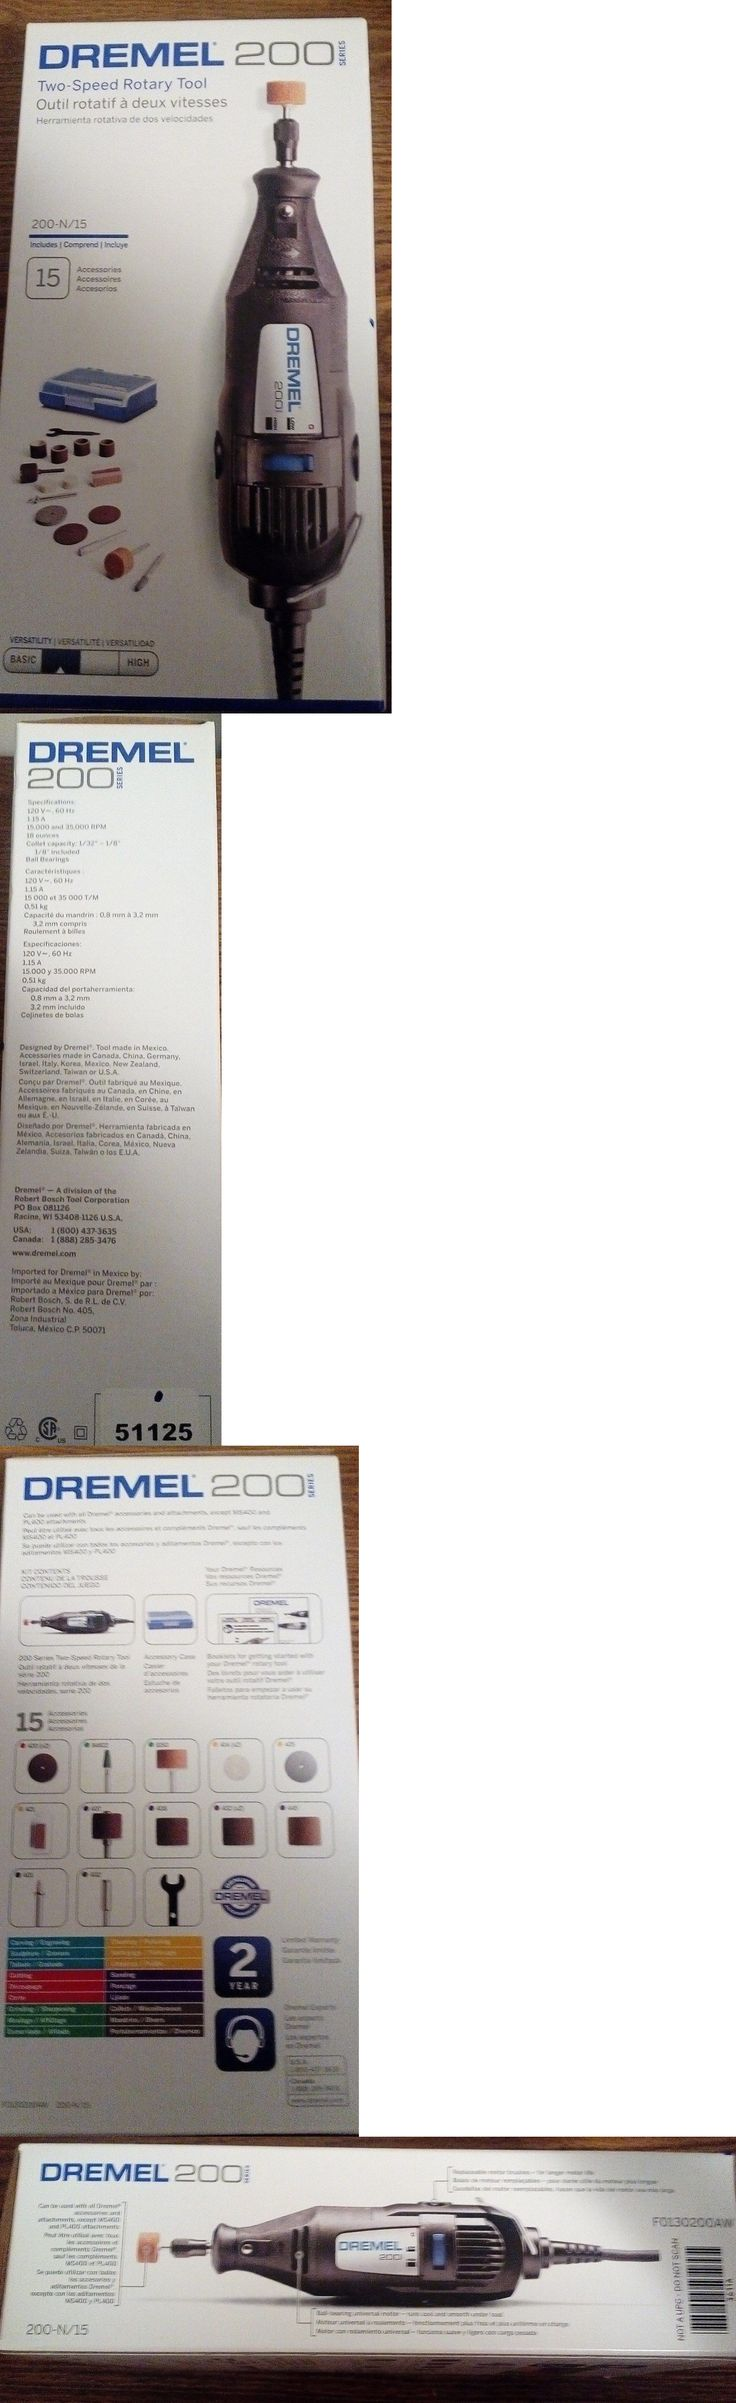 Rotary Tools and Accessories 34087: Dremel 200 Two-Speed Rotary Tool W 15 Pc Accessories -> BUY IT NOW ONLY: $31.99 on eBay!